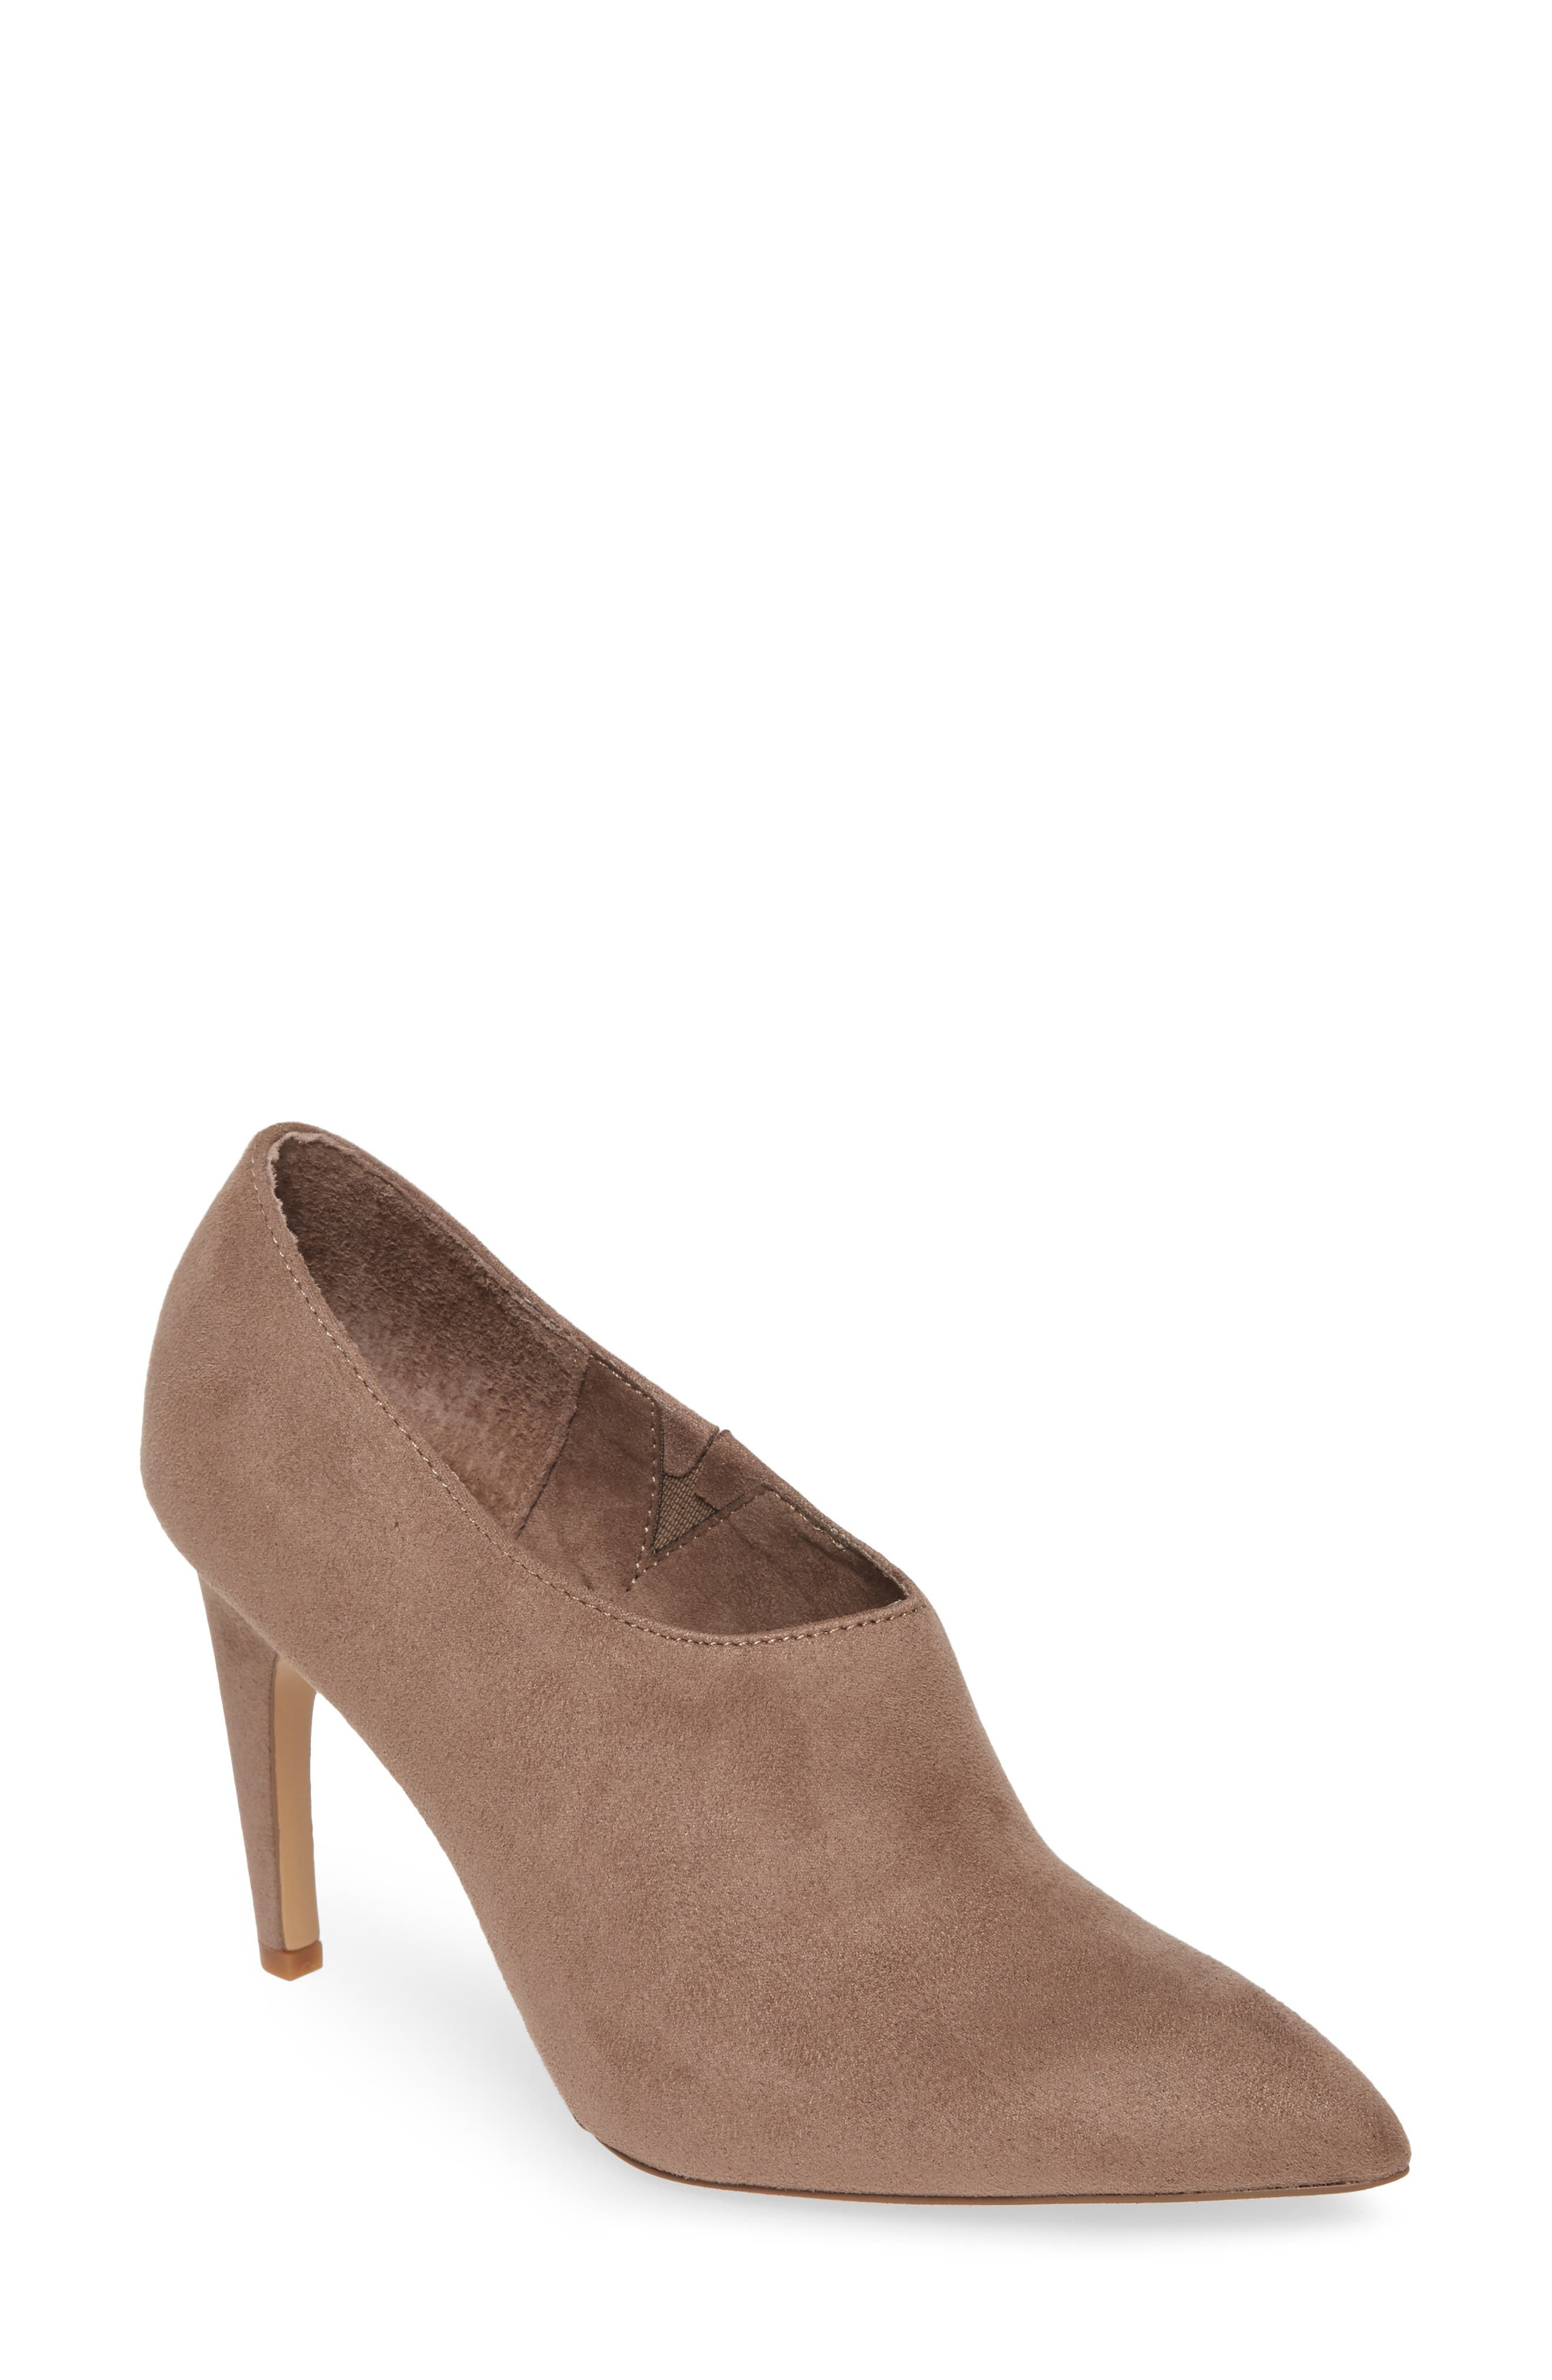 Charles By Charles David Oxy Shaftless Bootie, Beige